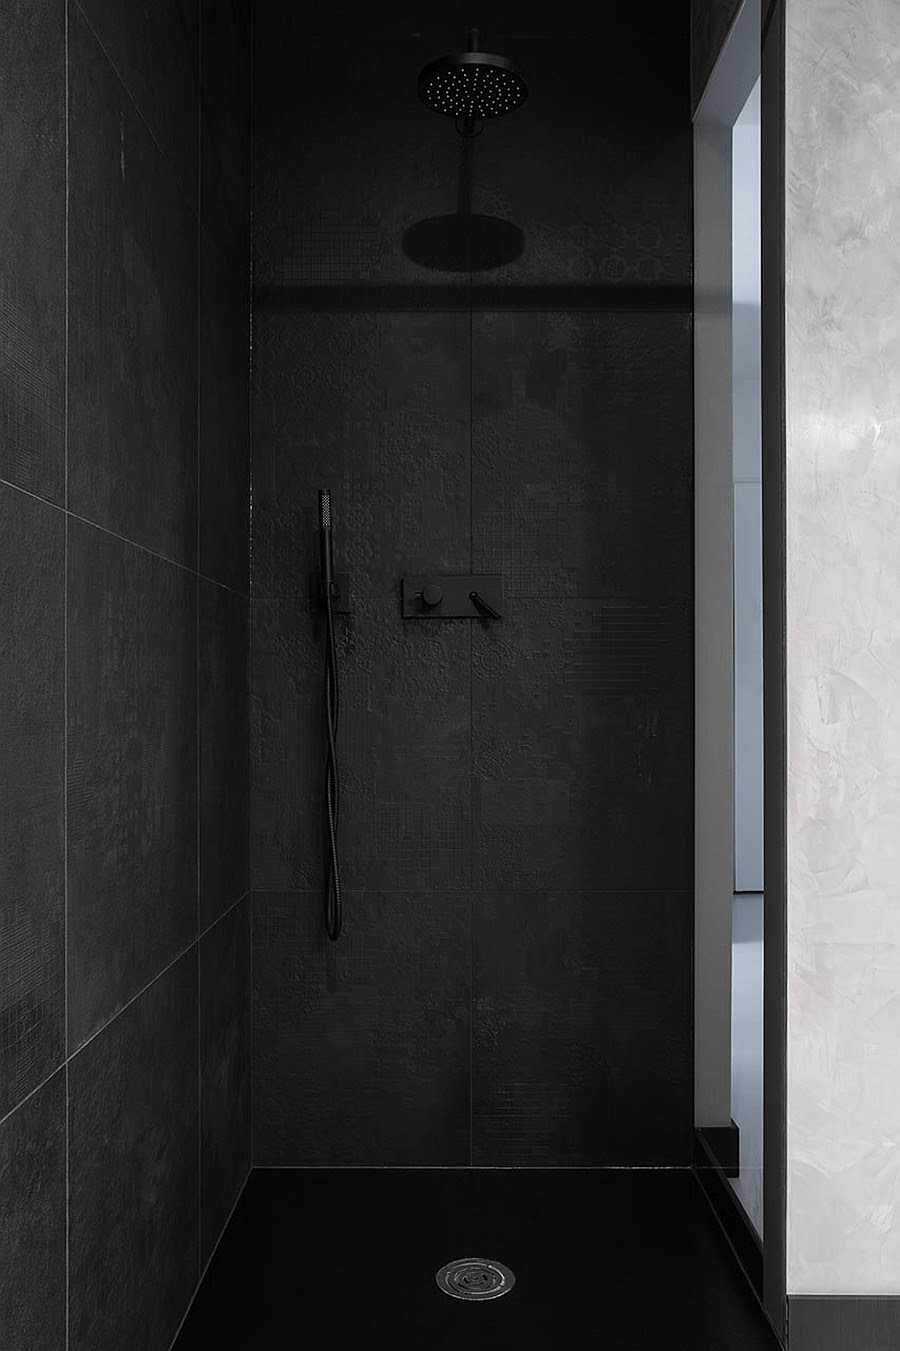 Stylish shower area clad in black tiles